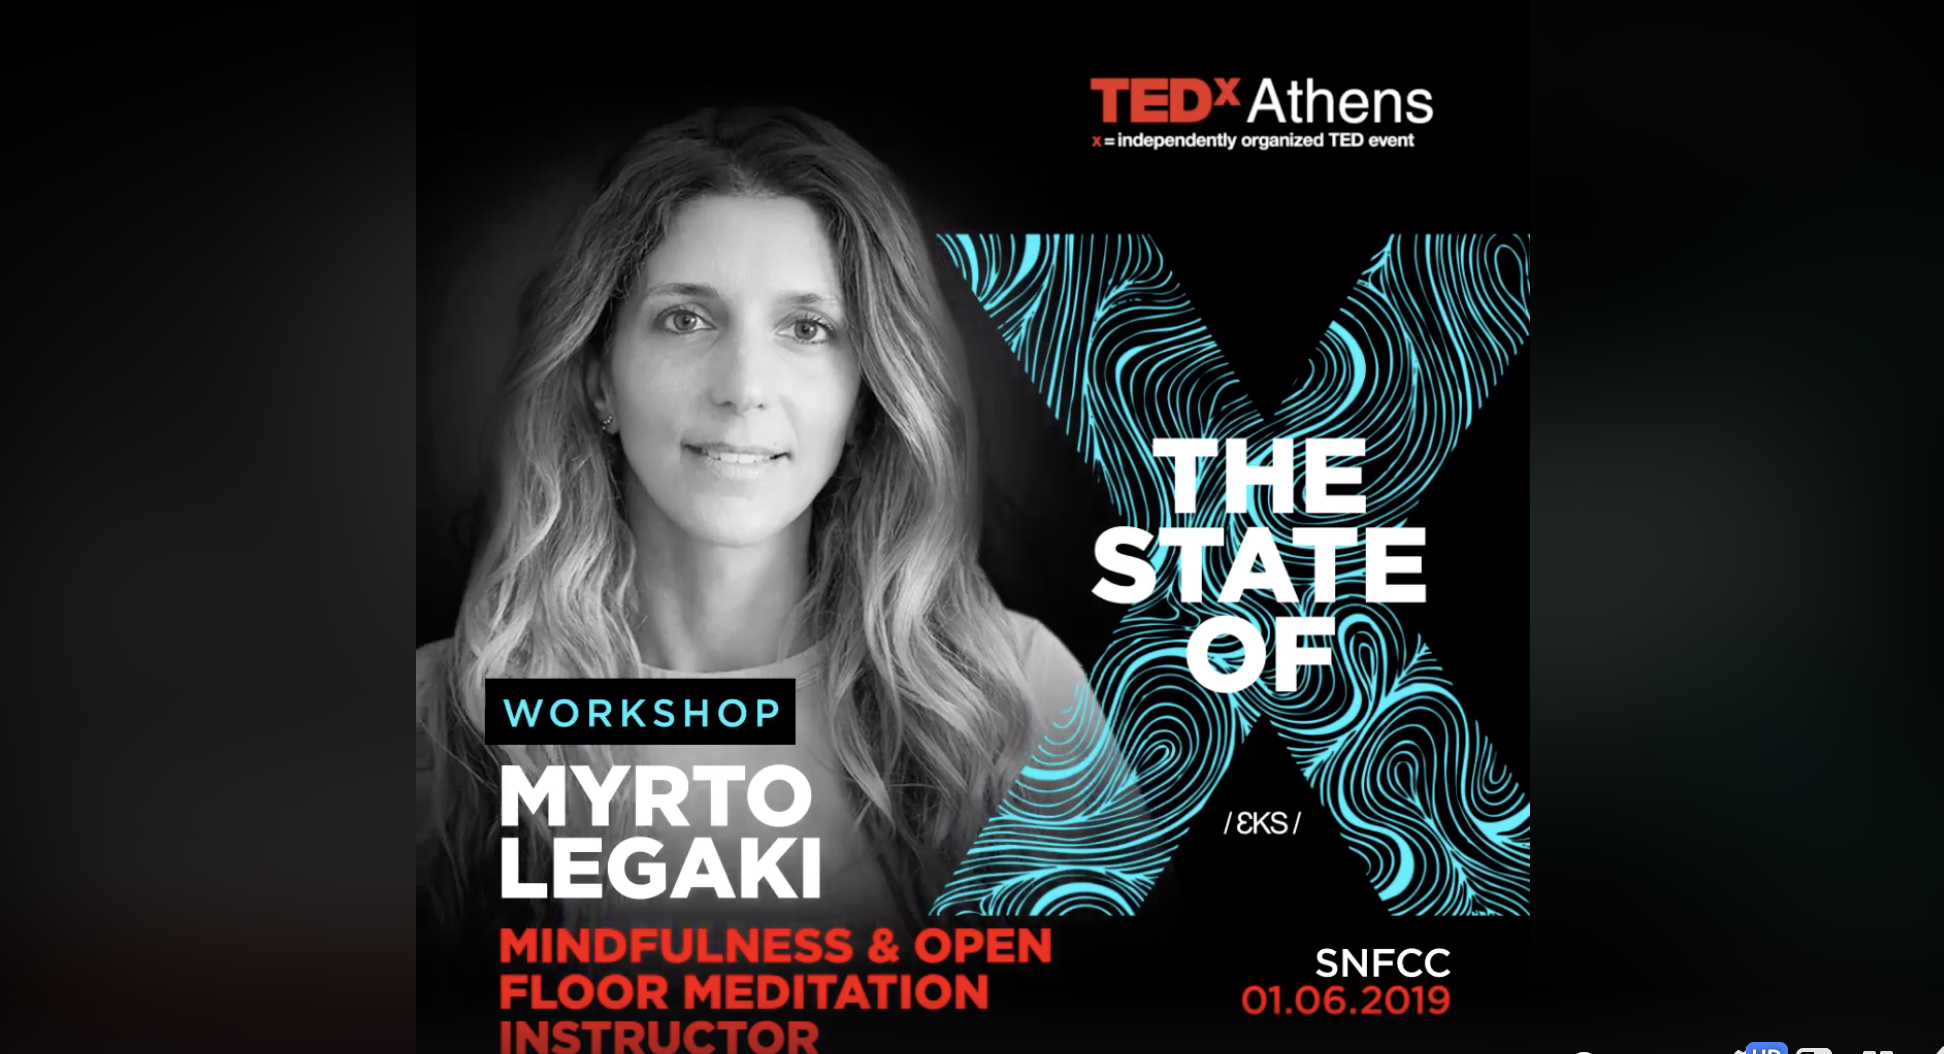 Myrto Legaki TEDxAthens 2019 LAB Open Floor workshop